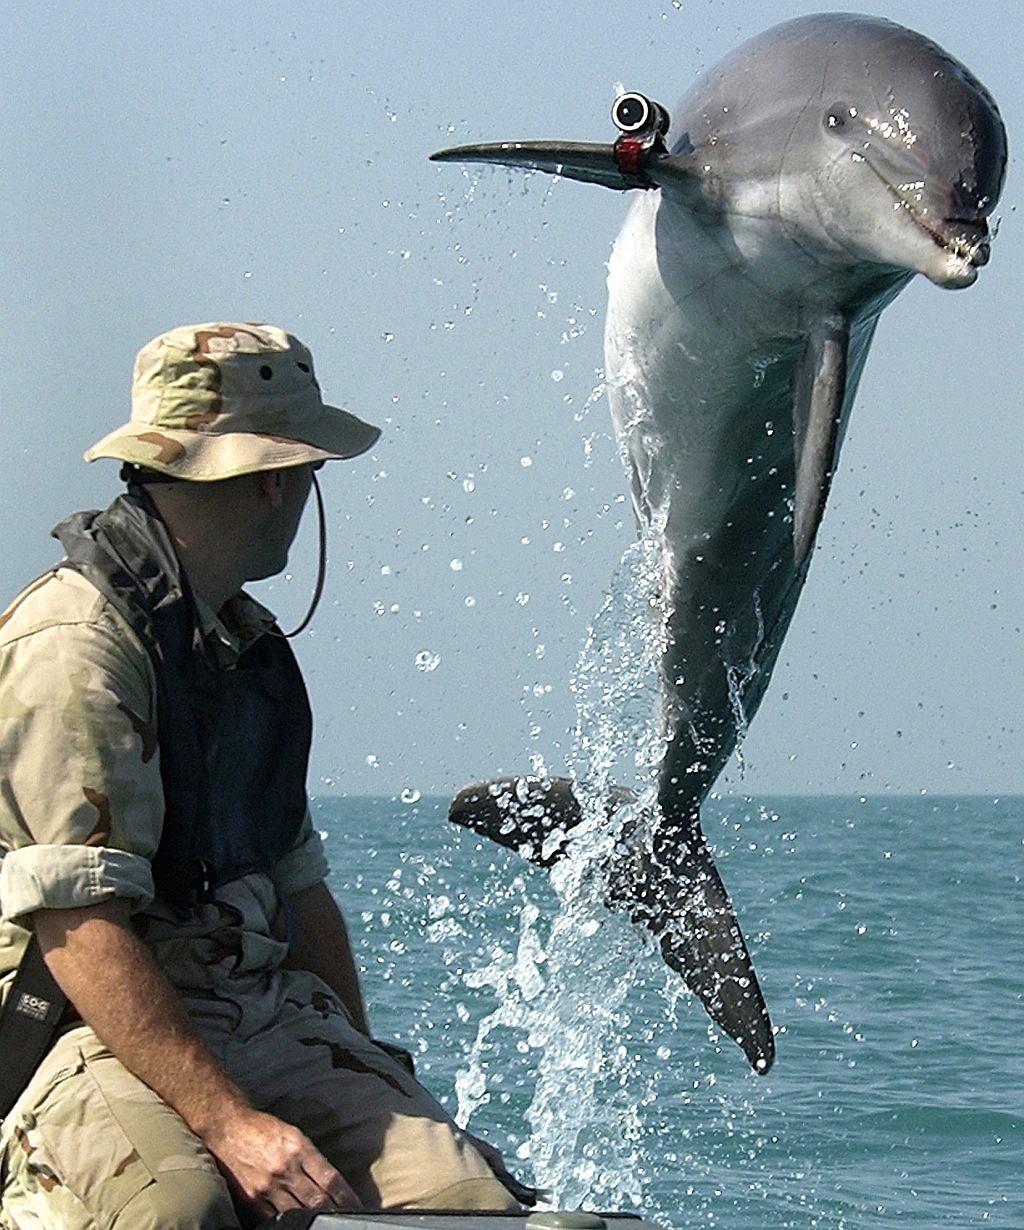 K-Dog, a Bottlenose Dolphin (Tursiops truncatus), Leaps Out of the Water While Training in the Arabian Gulf. Attached to the Bottle-nosed Dolphin's Pectoral Fin is a Tracking Device. March 18, 2003, Central Command Area of Responsibility. Photo Credit: Photographer's Mate 1st Class Brien Aho, Navy NewsStand - Eye on the Fleet Photo Gallery (http://www.news.navy.mil/view_photos.asp, 030318-N-5319A-002), United S